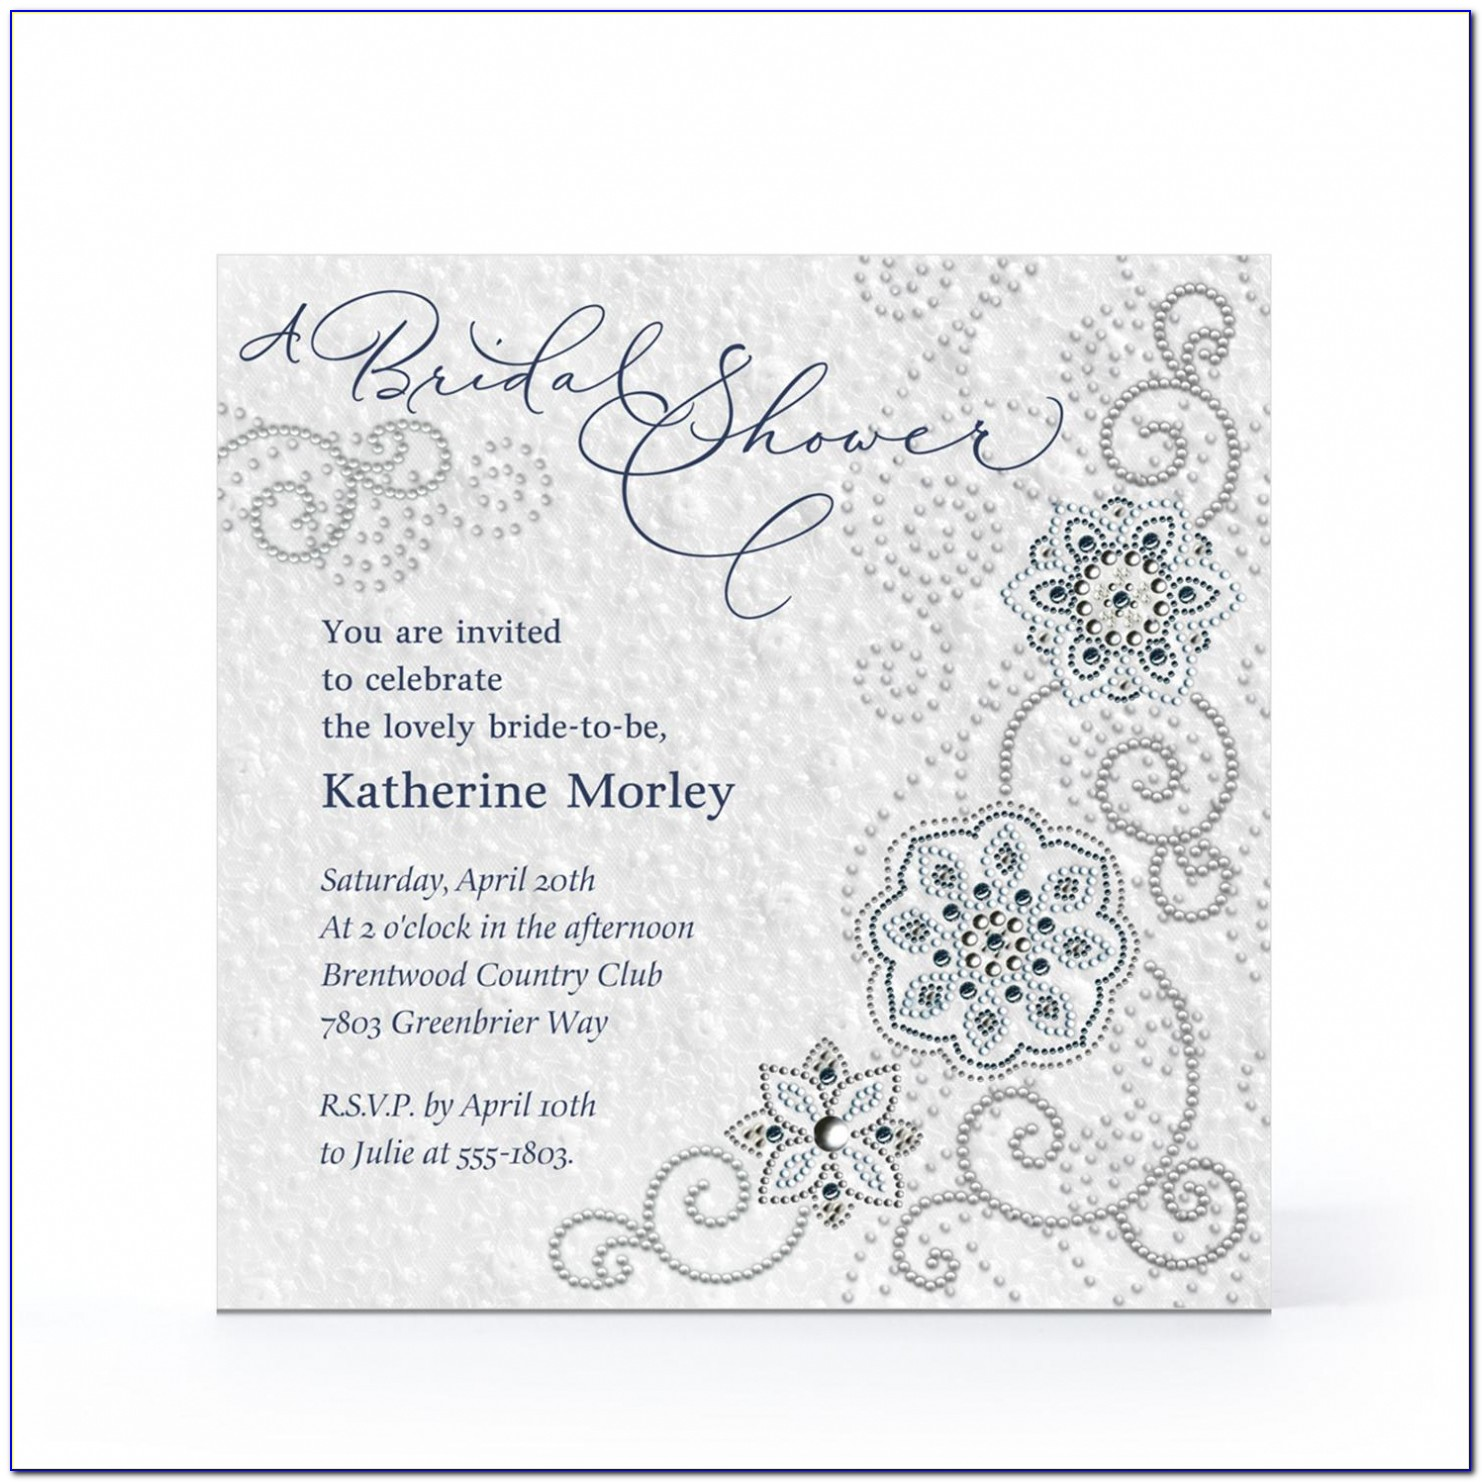 Hallmark Wedding Invitations To Inspire You In Creating Breathtaking Digital Wedding Invitation 522